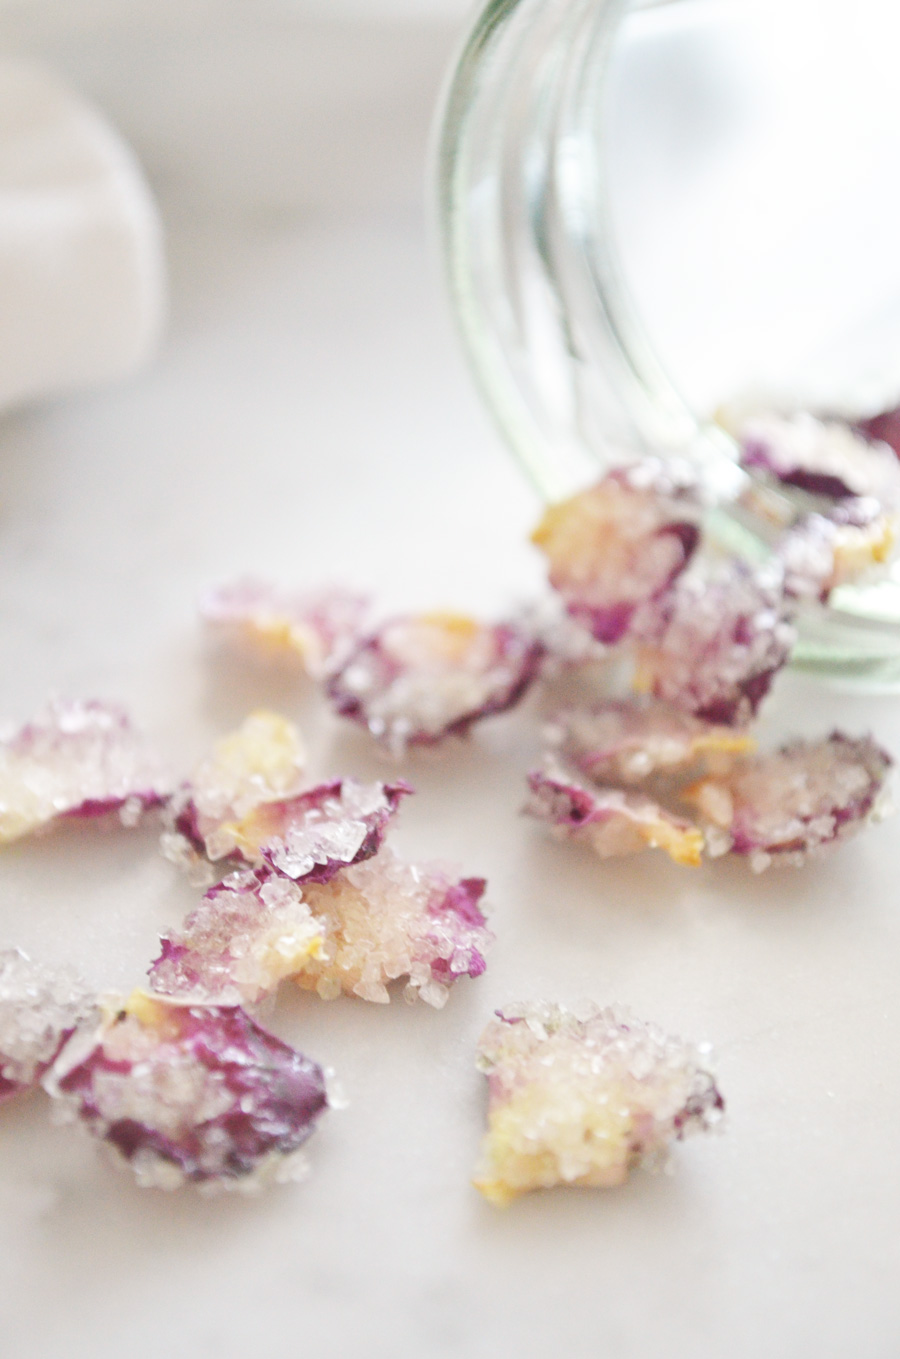 How to make vegan candied rose petals